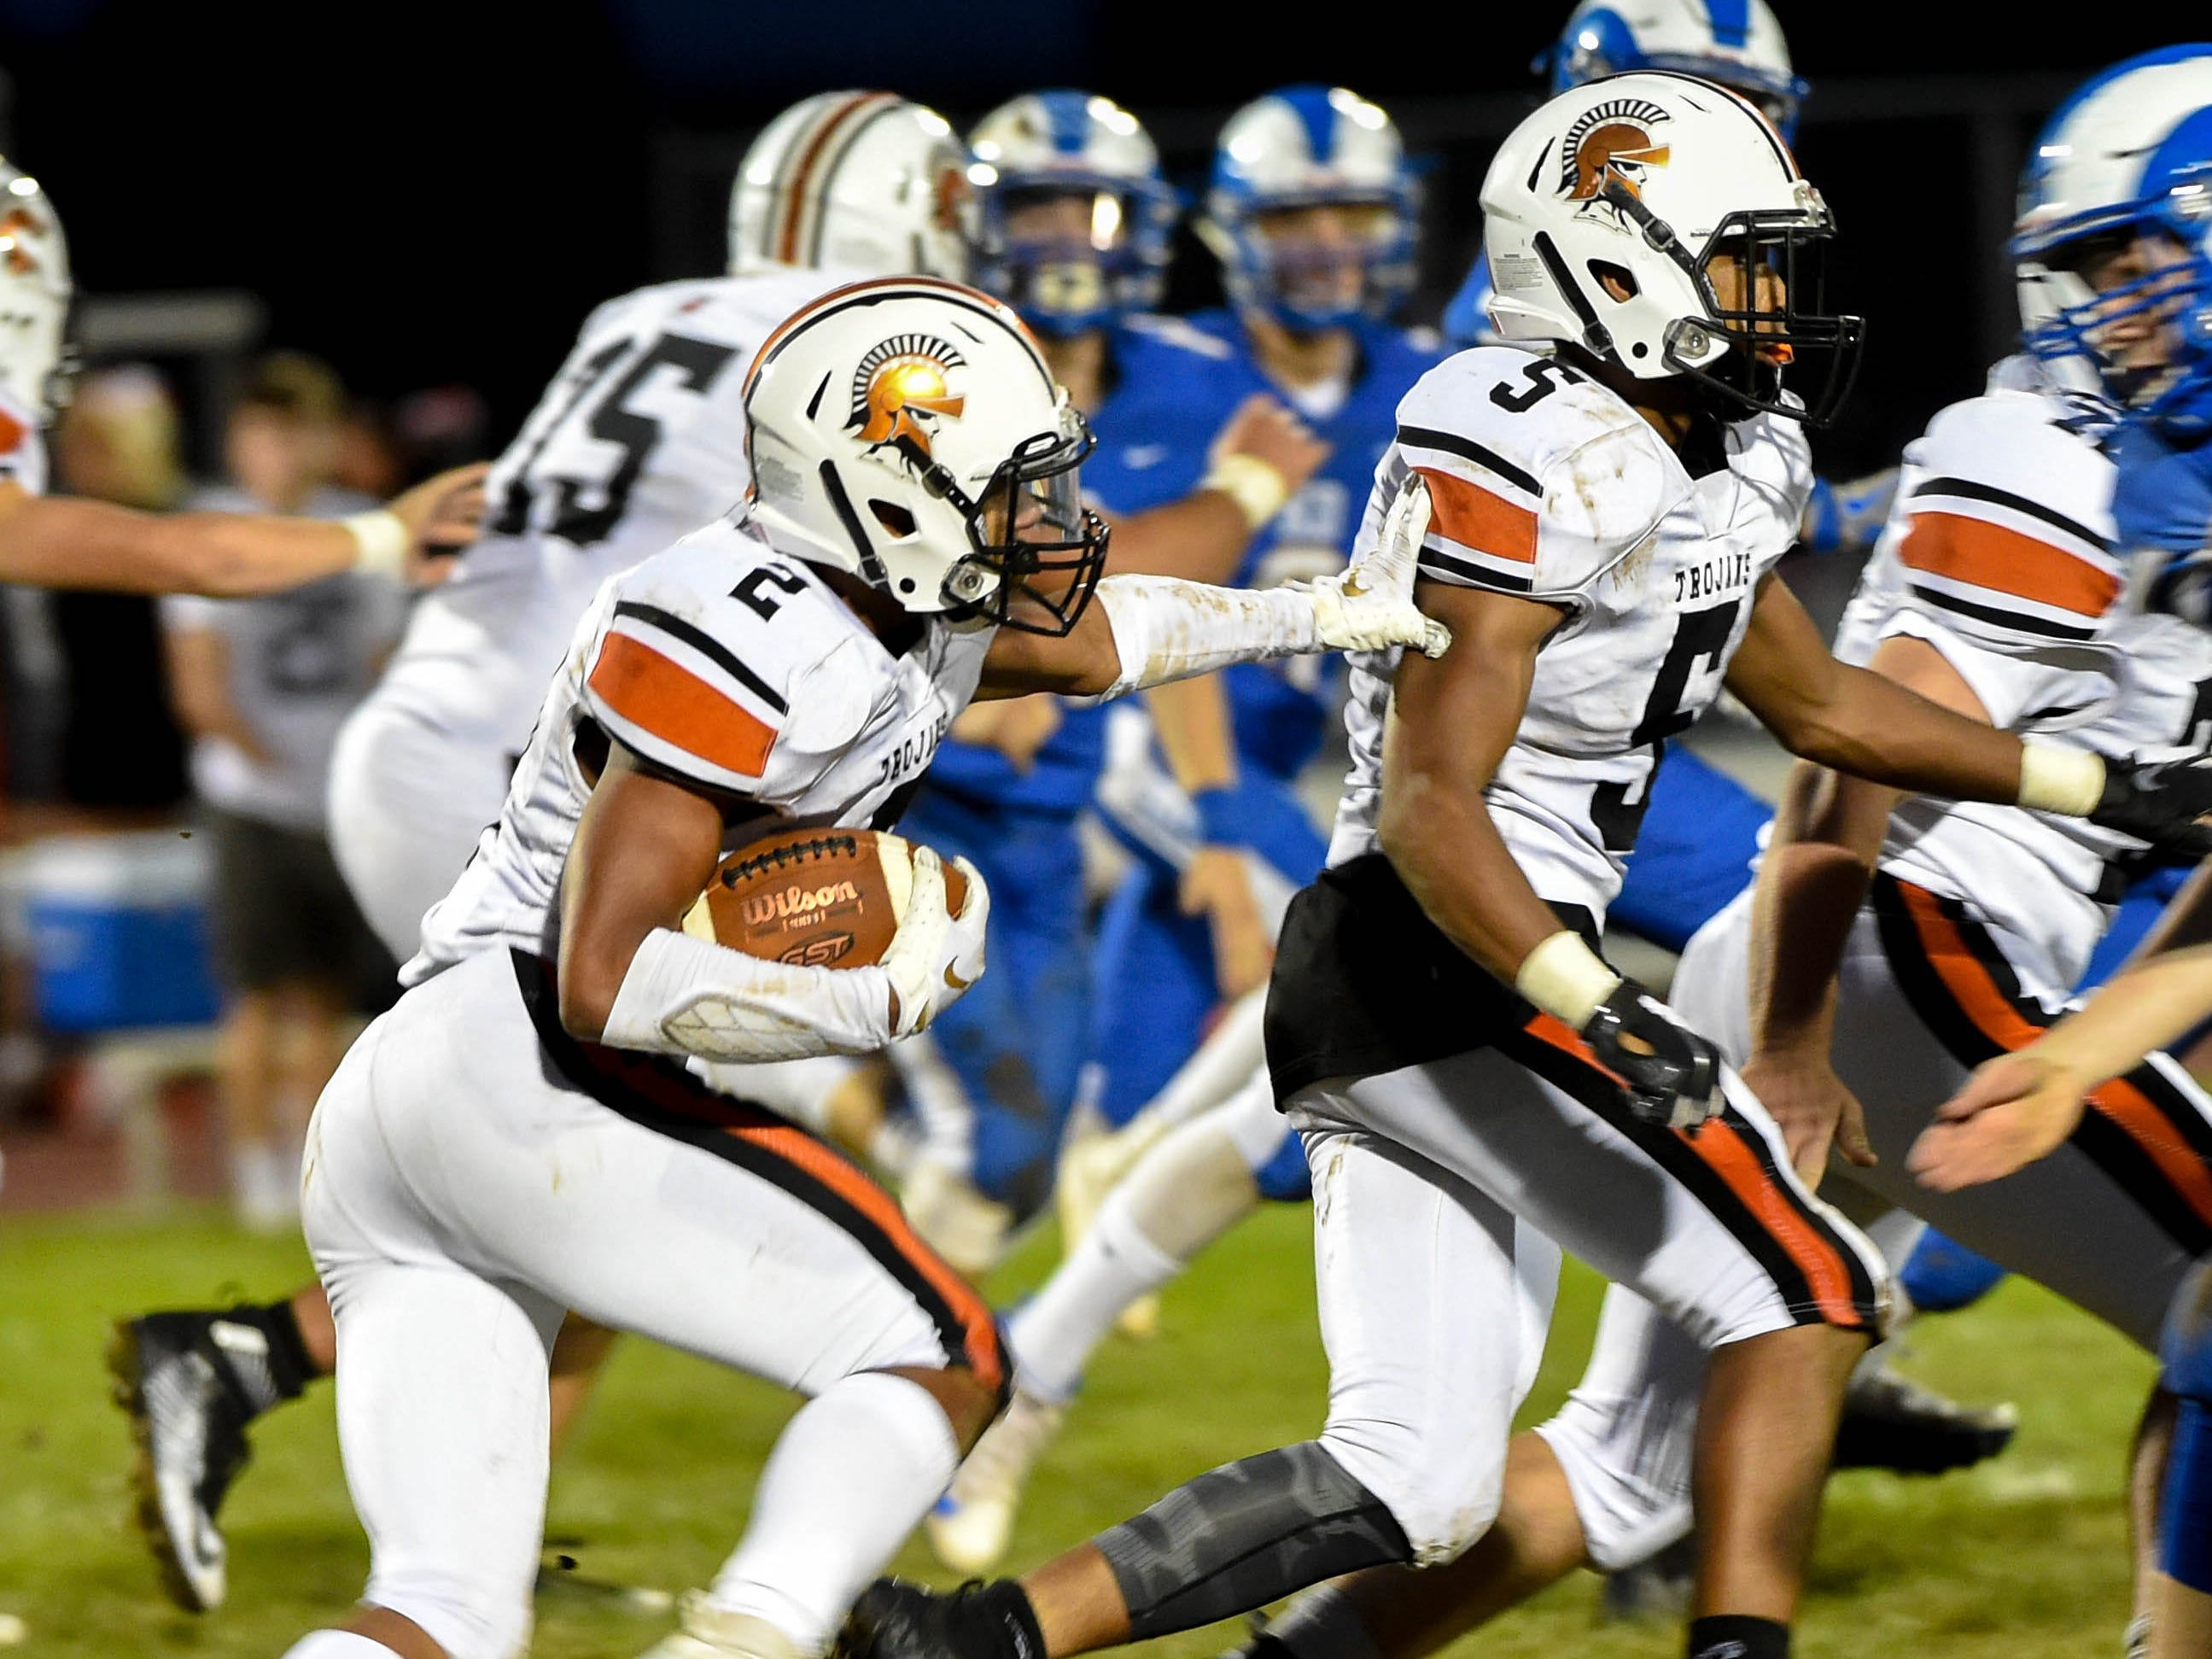 Savion Harrison (2) uses his blocker during the game between Kennard-Dale and York Suburban, Friday, September 21, 2018. The York Suburban Trojans beat the Kennard-Dale Rams 31-25.